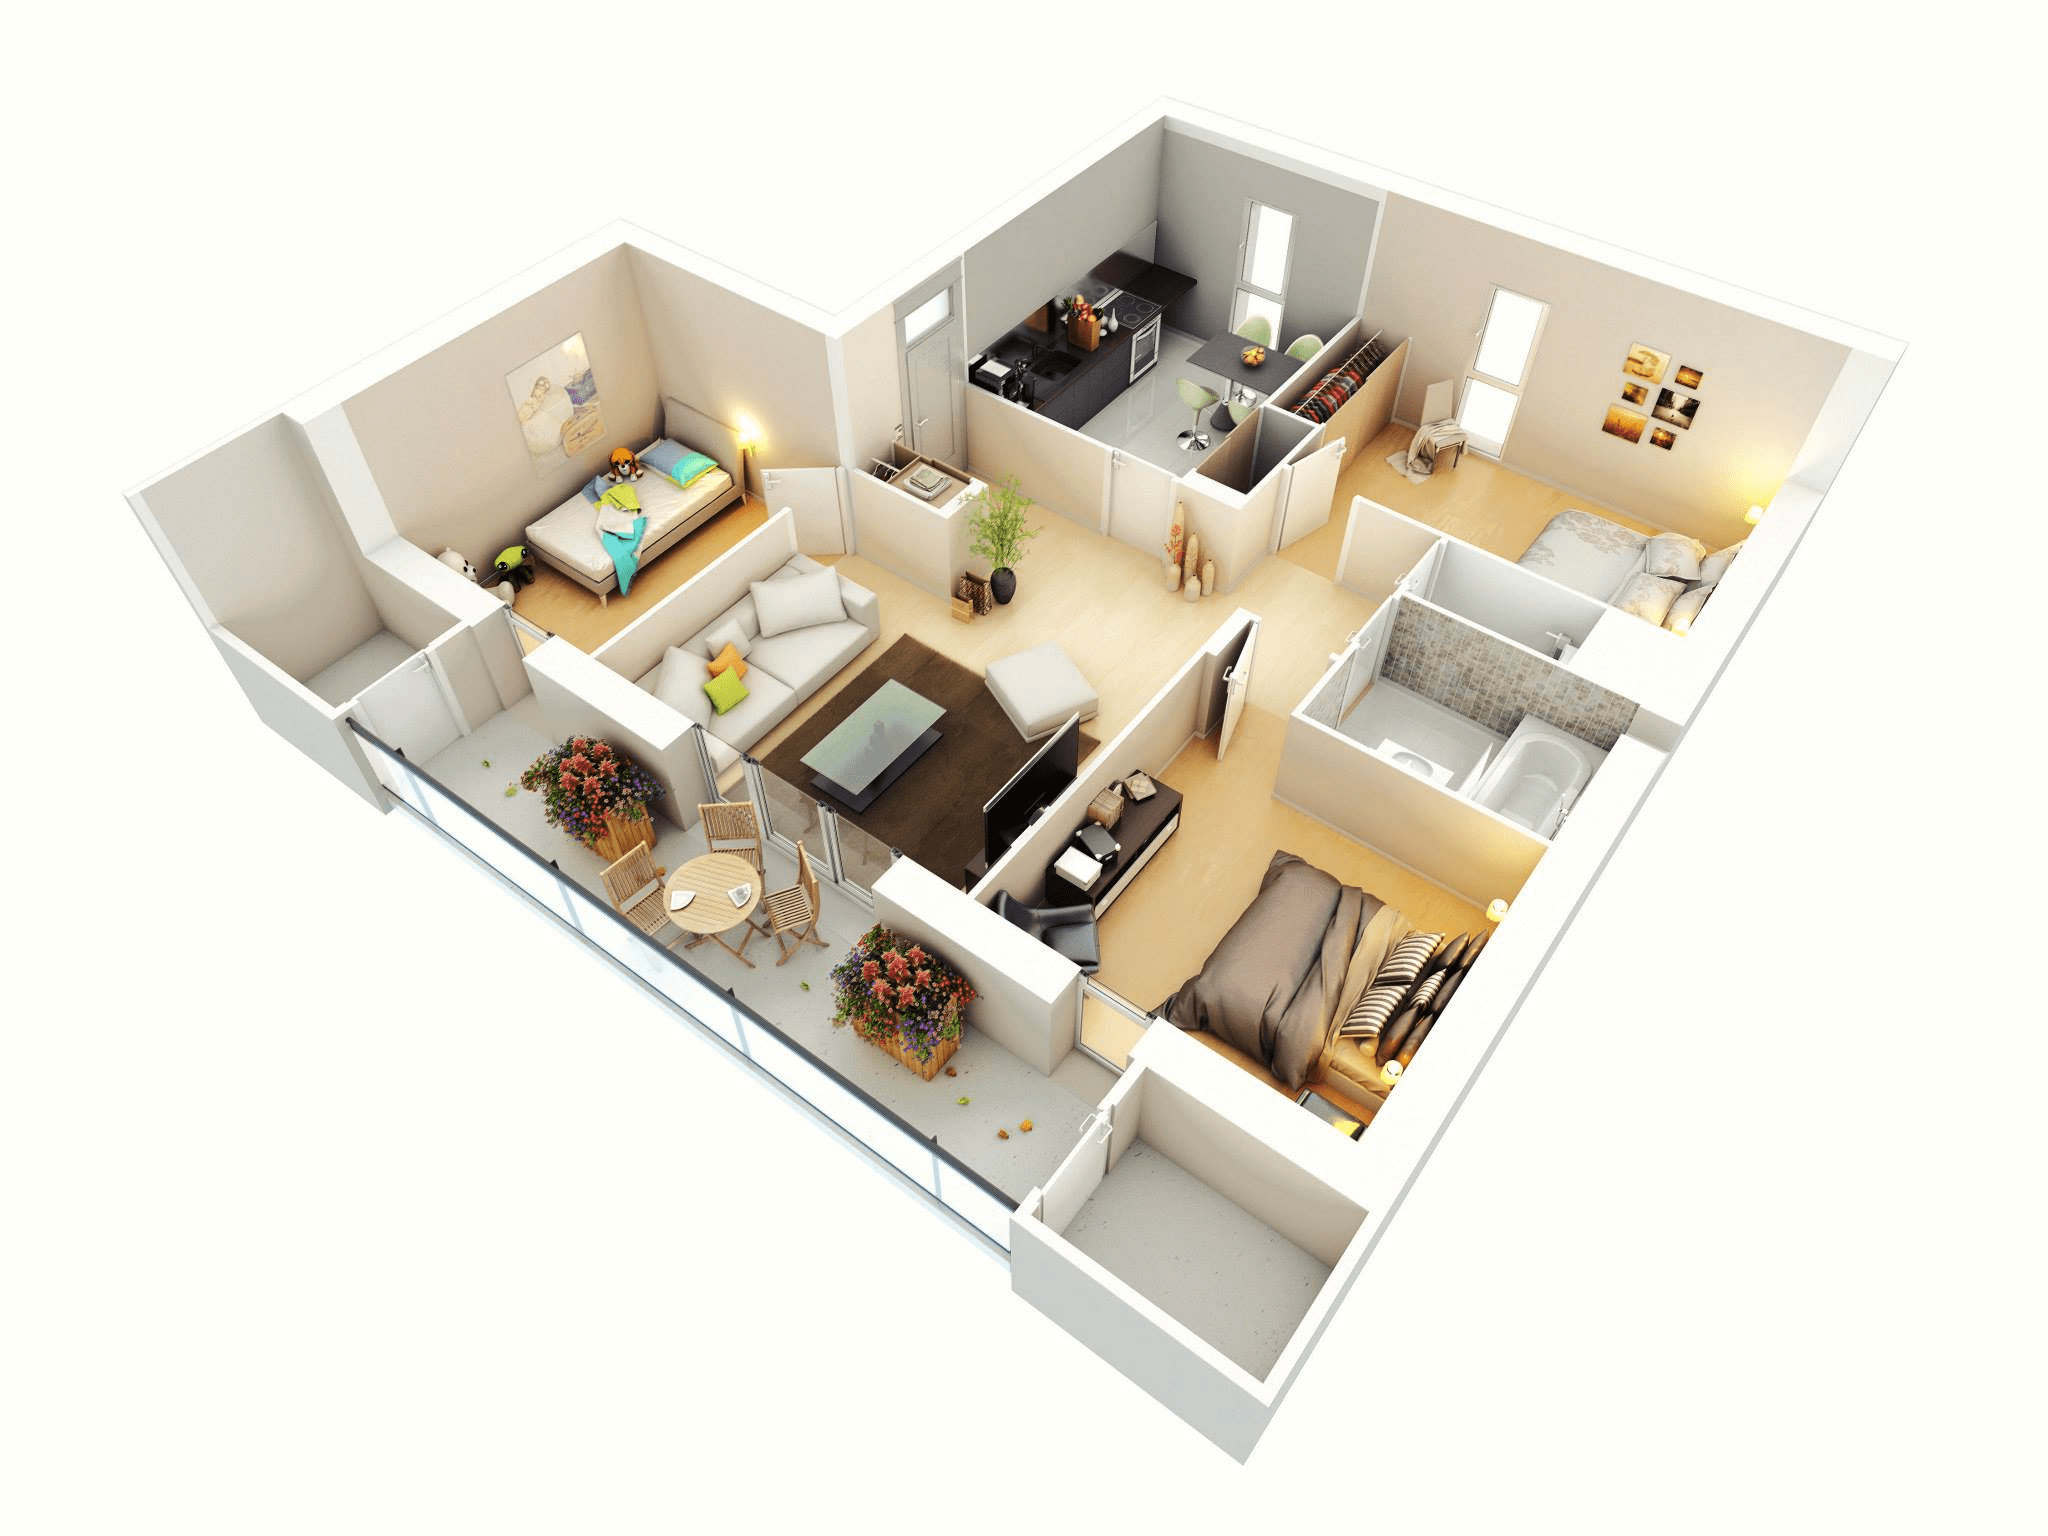 3d three bedroom house layout design plans 23034 for 3d house floor plans